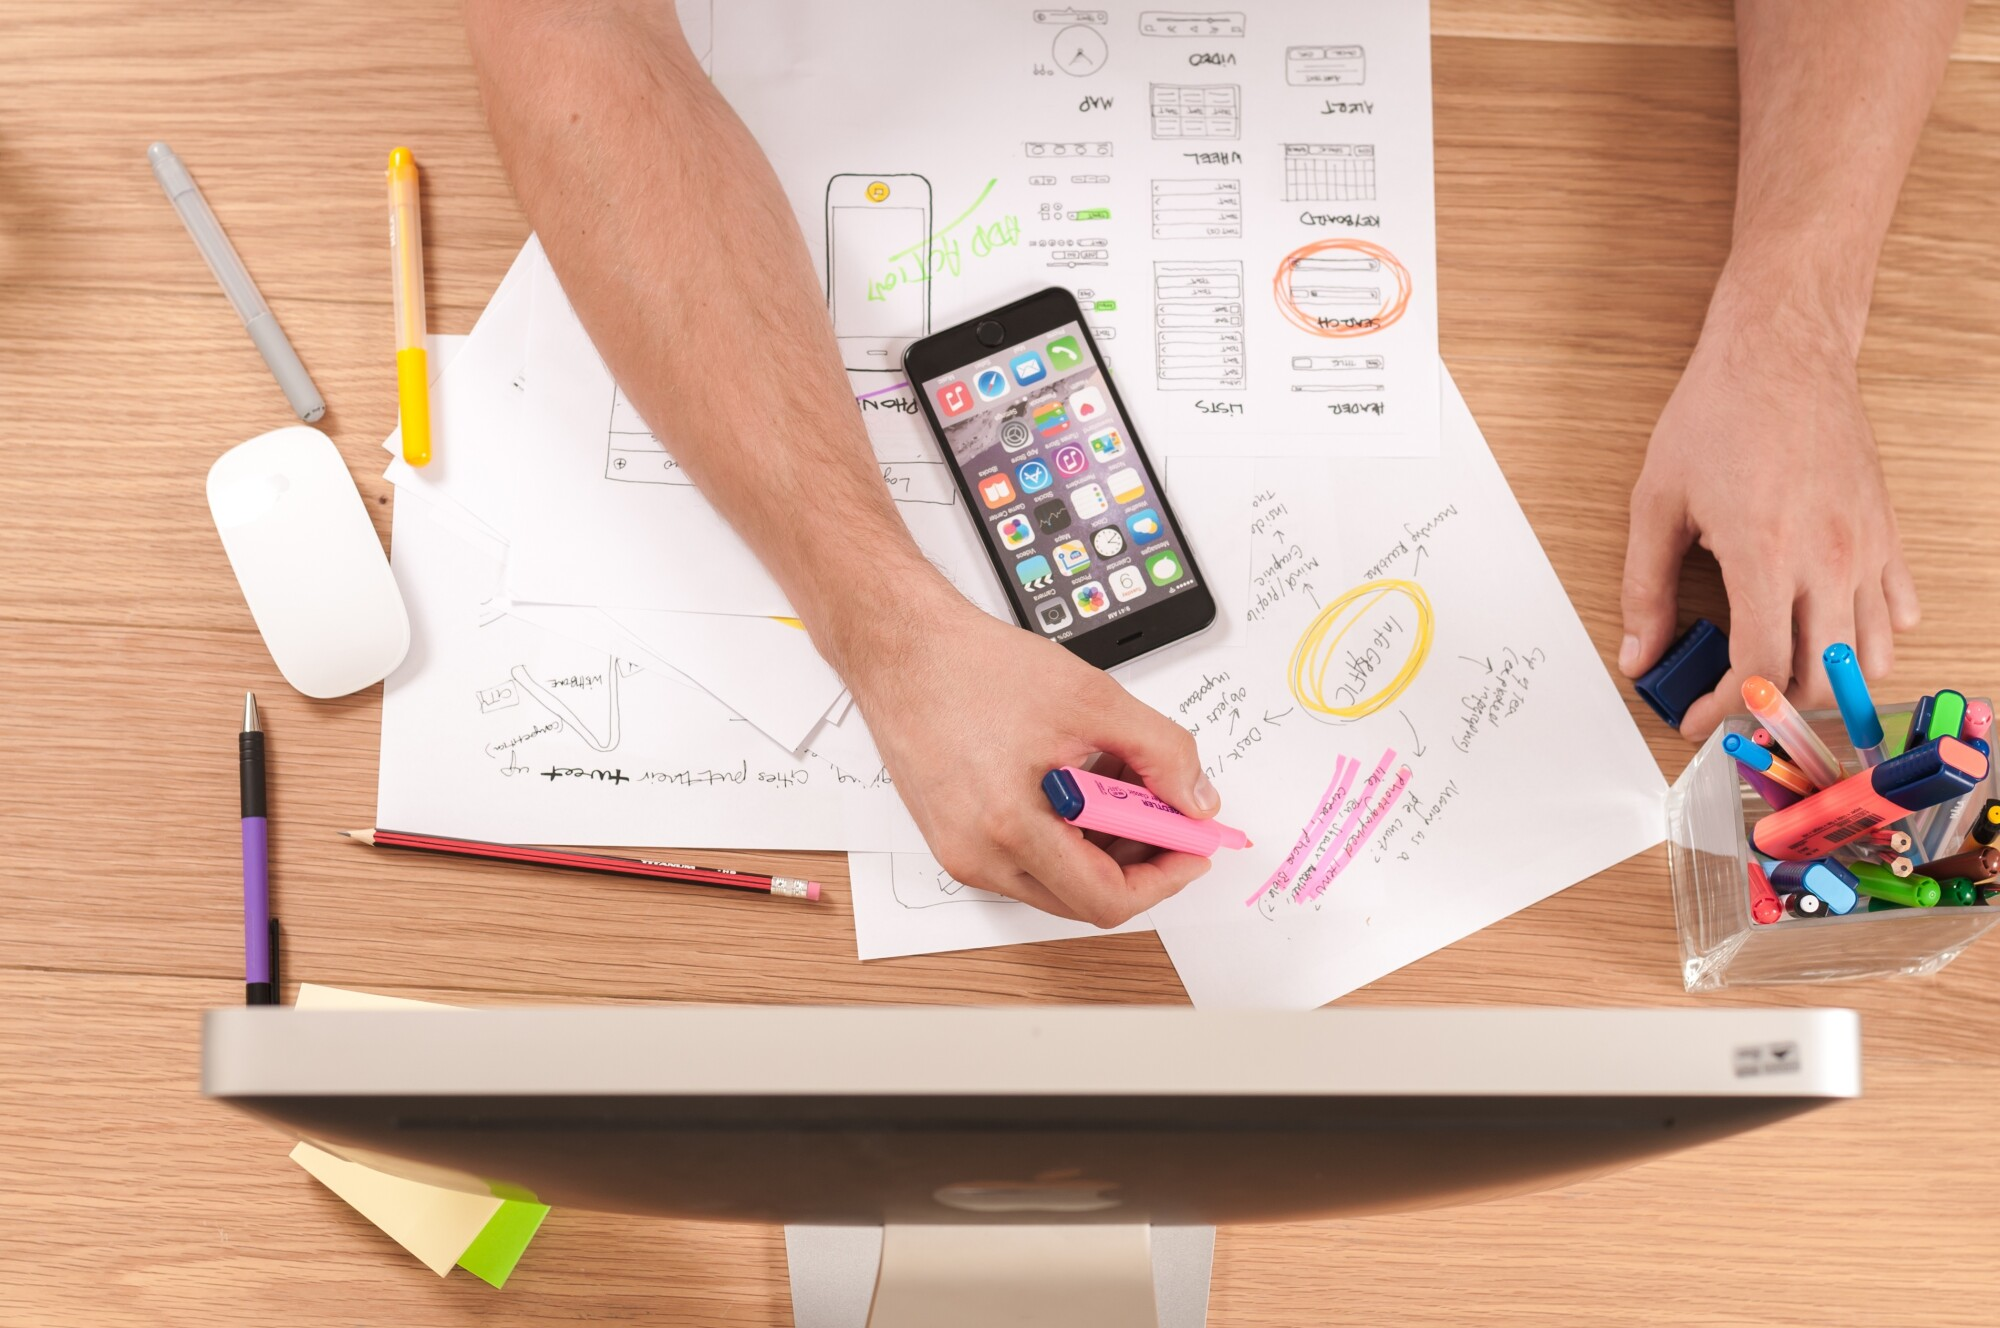 What to Expect During the App Development Process